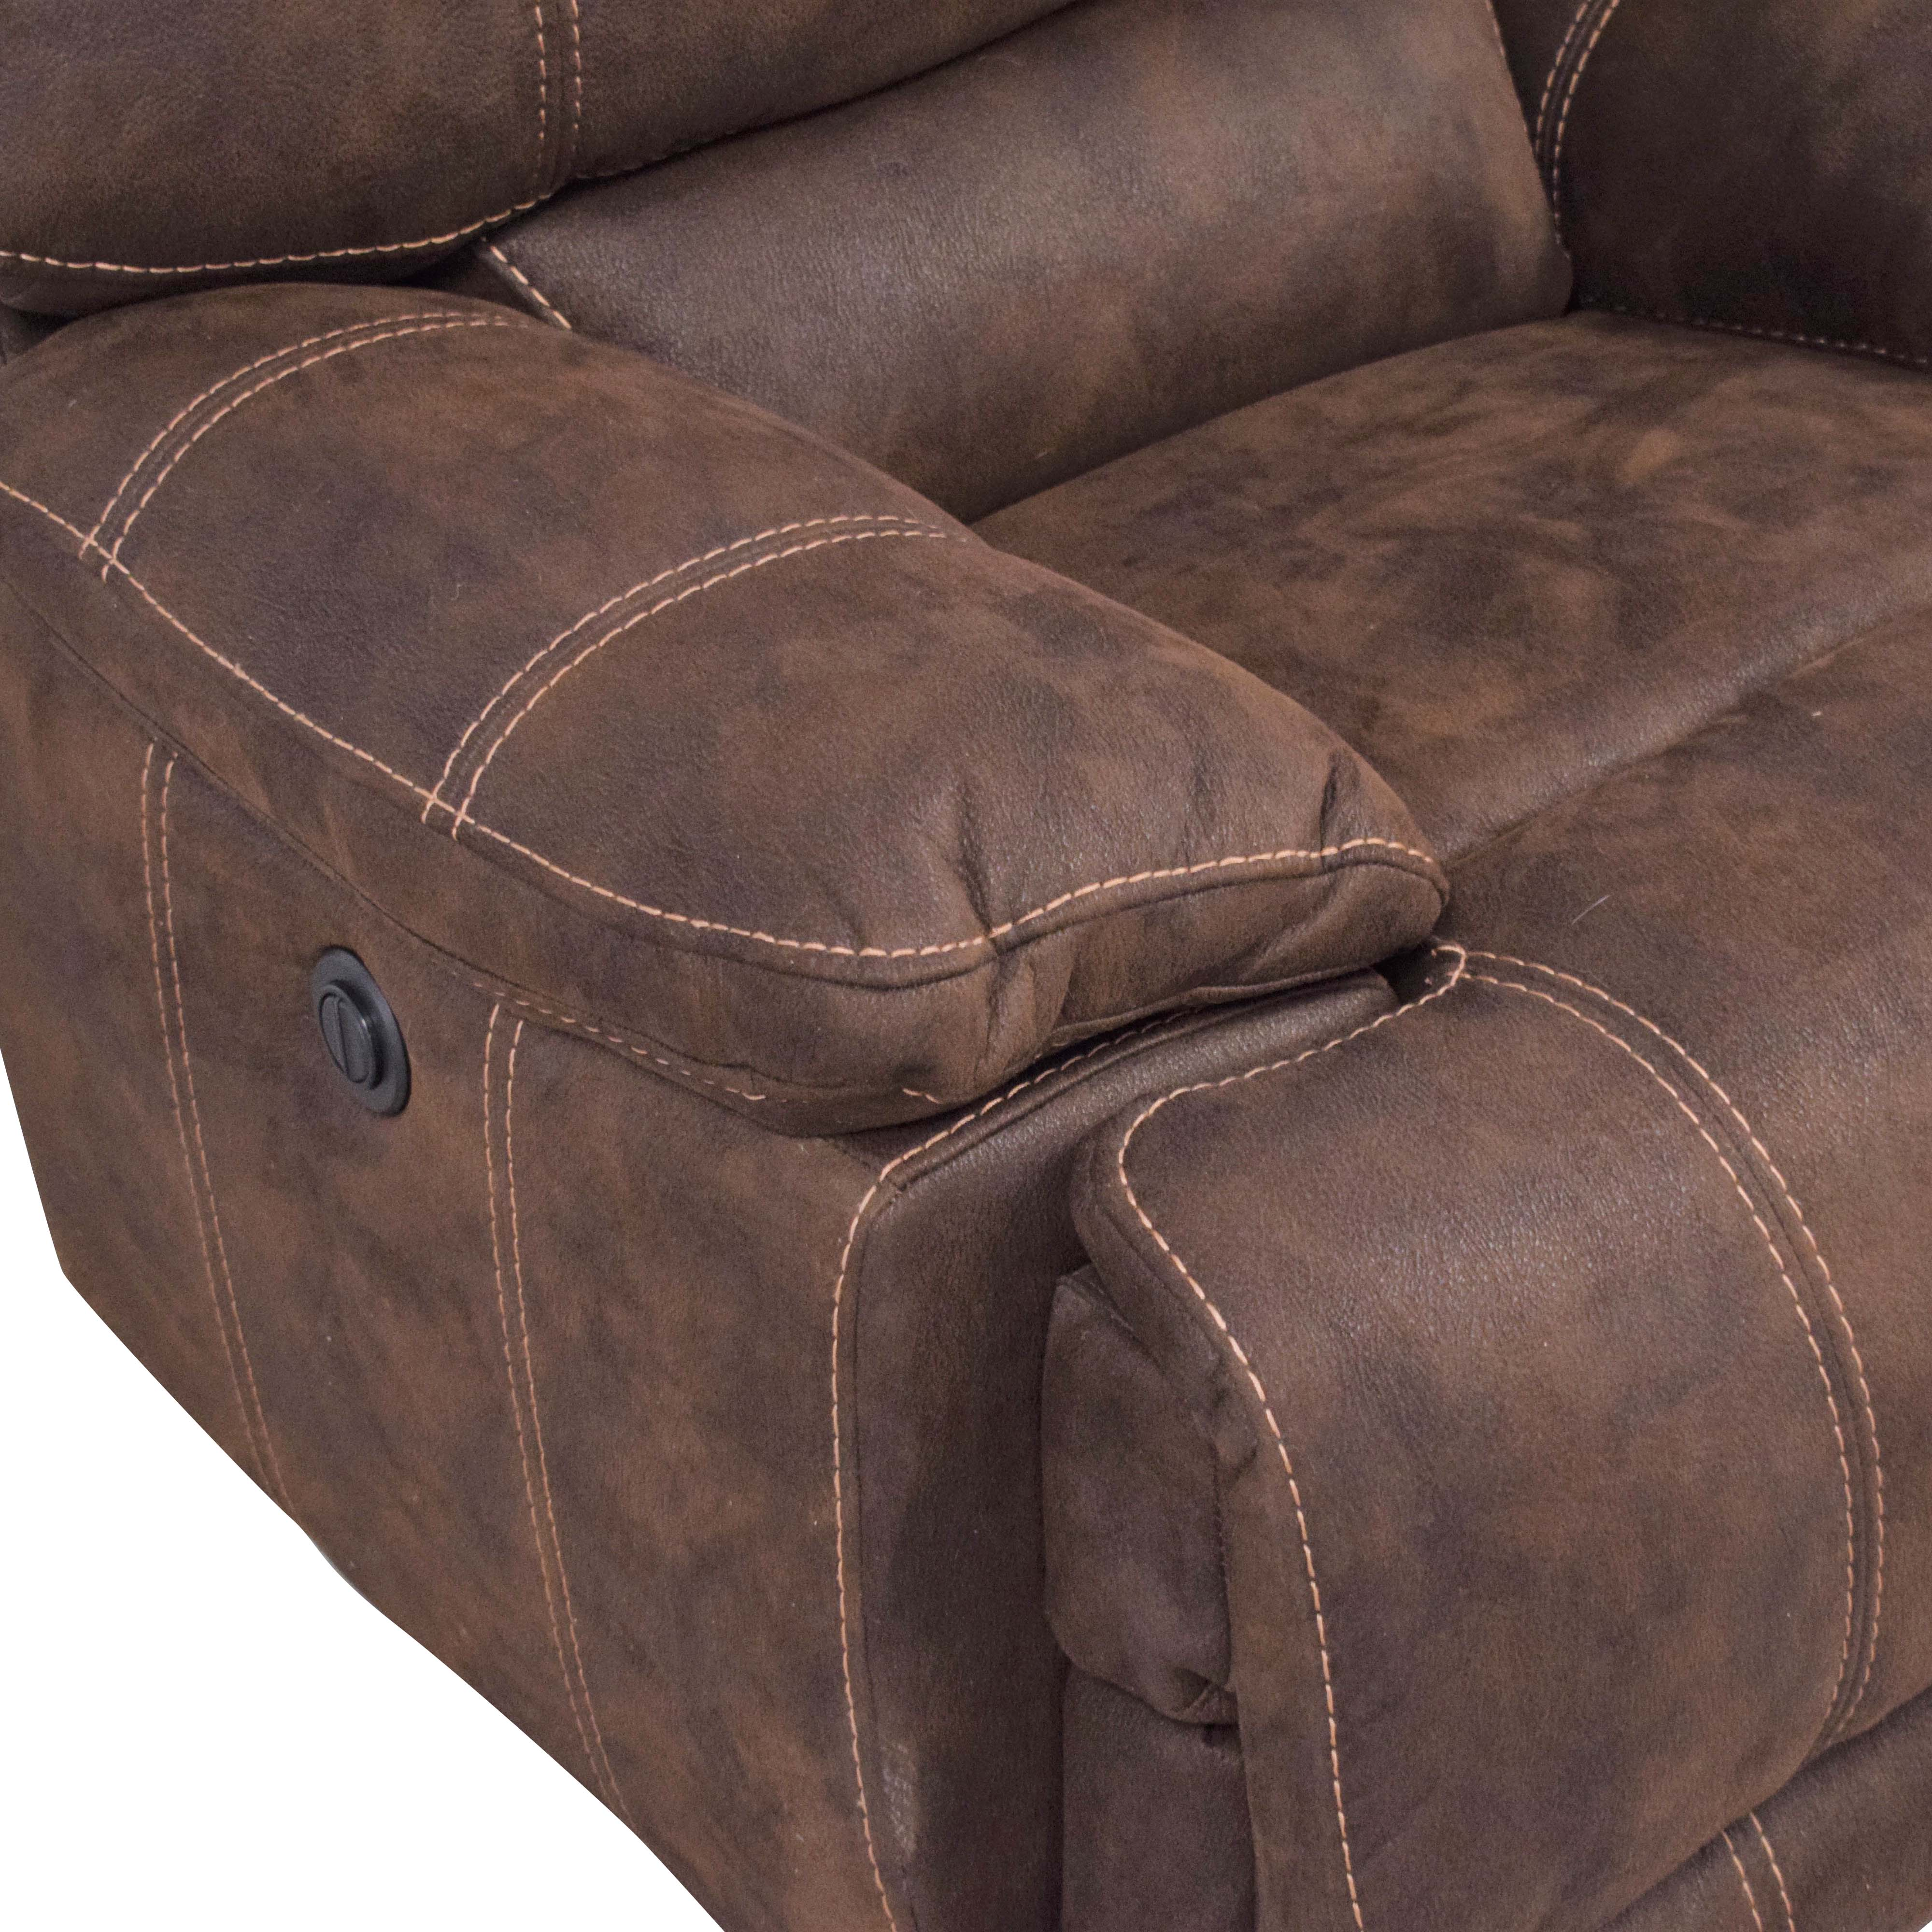 Macy's Macy's Upholstered Recliner coupon